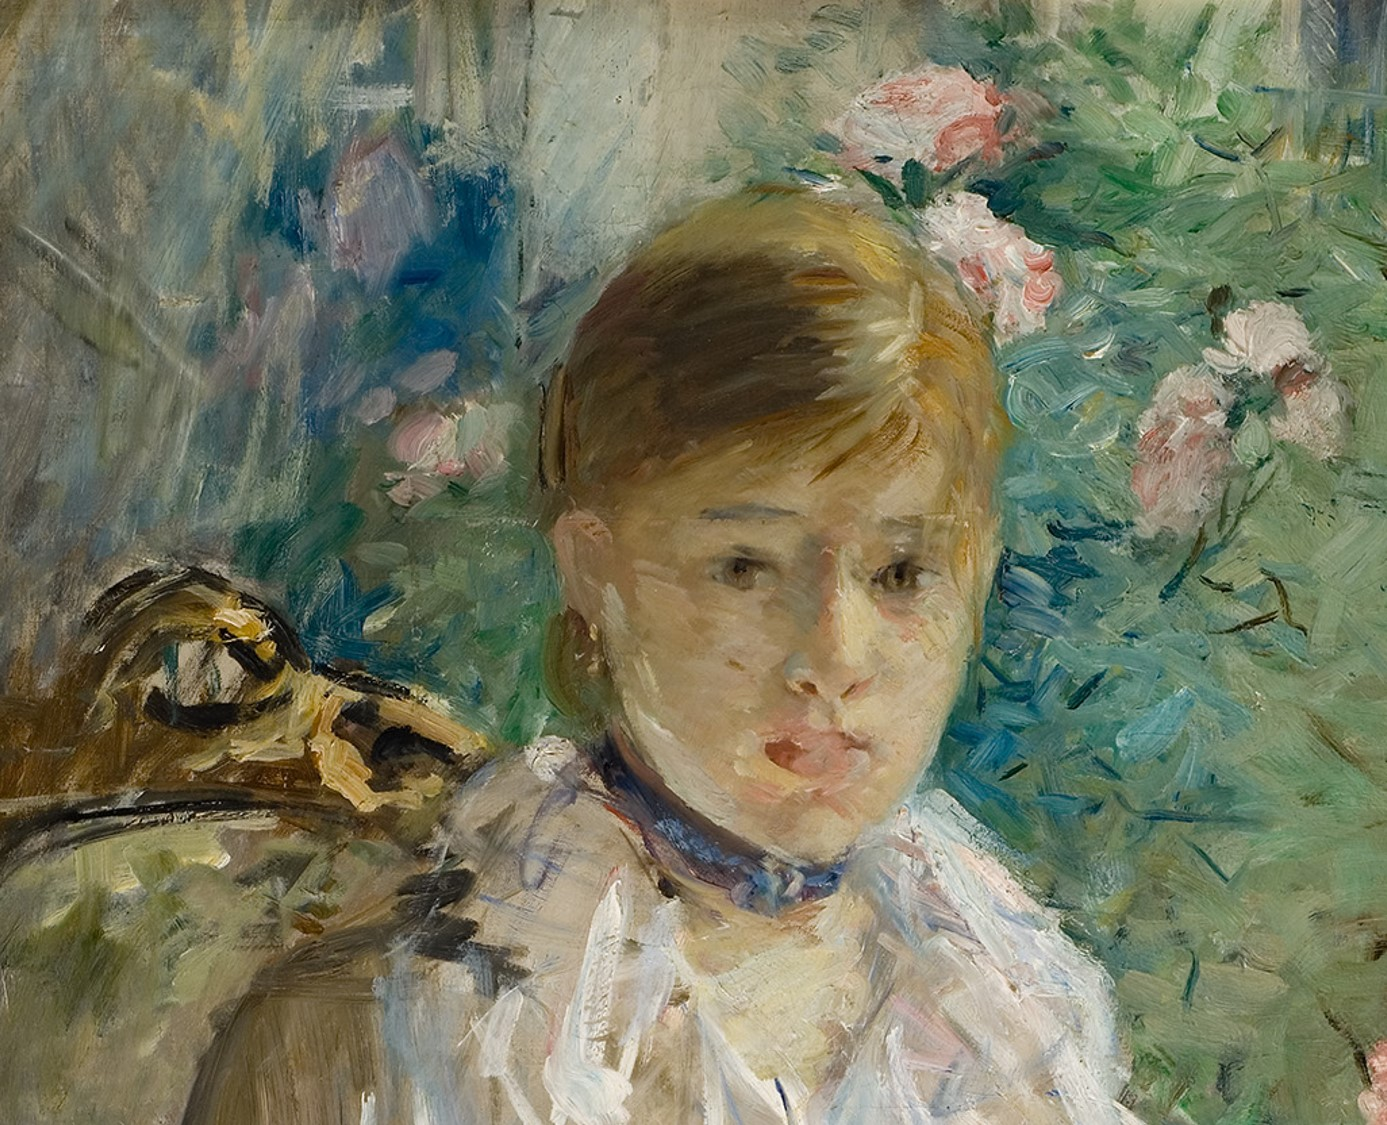 Berthe Morisot: The Technique of Art & the Questions of Life